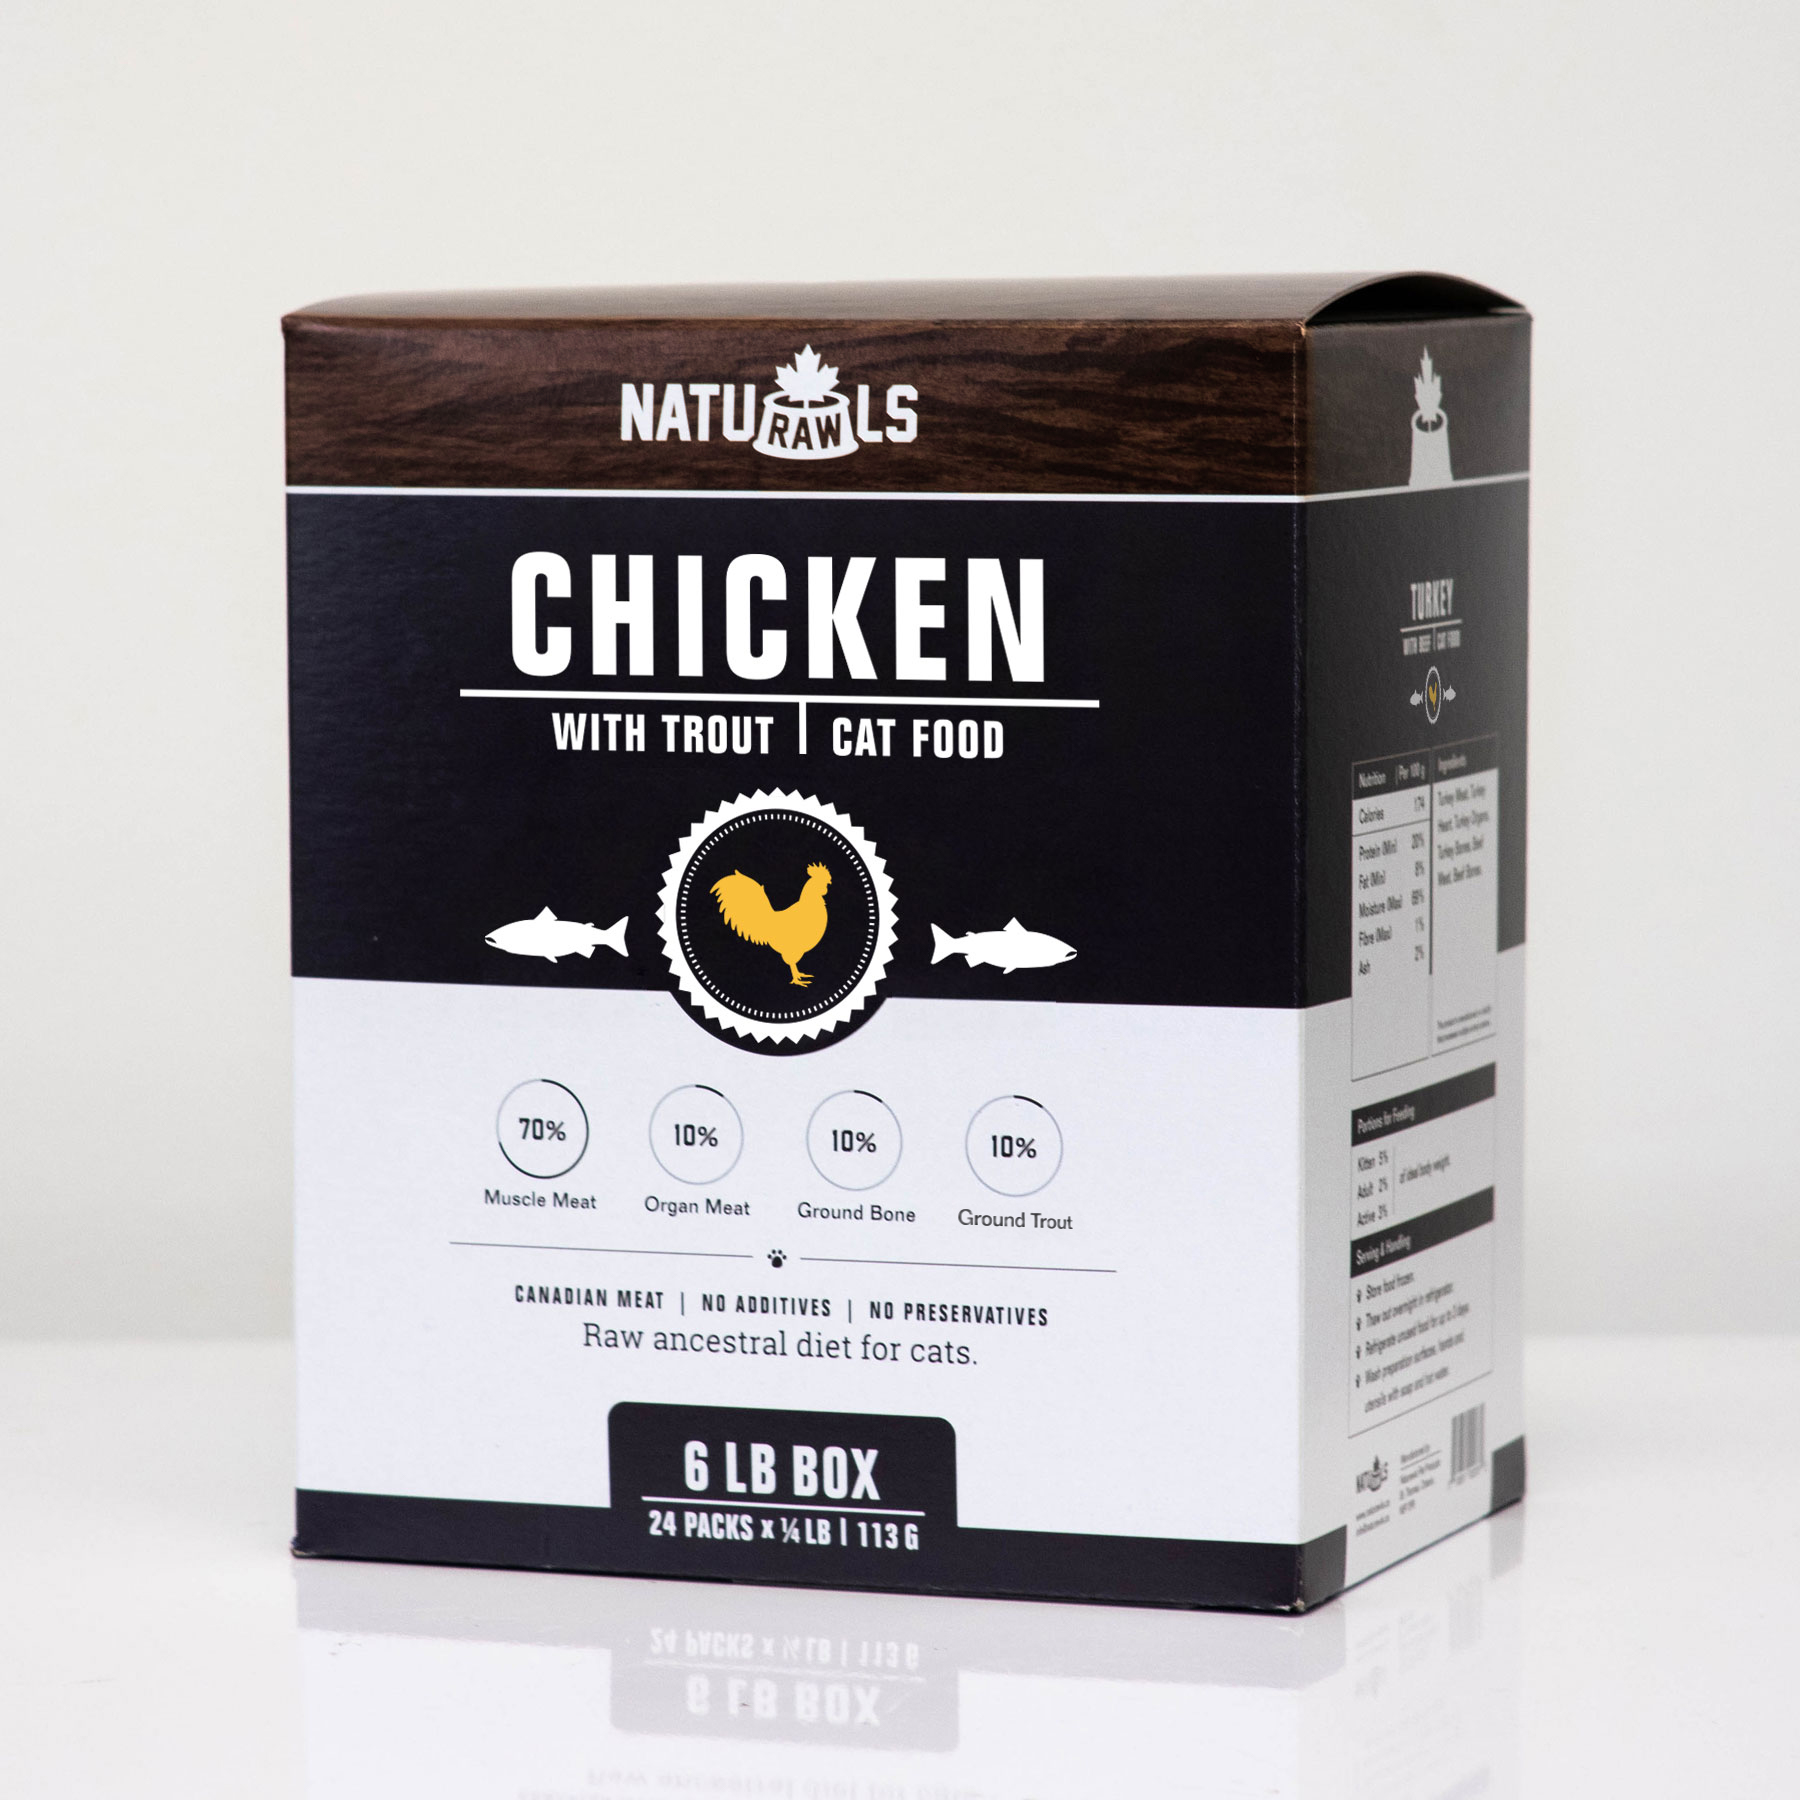 Naturawls Chicken with Trout Raw Cat Food Image